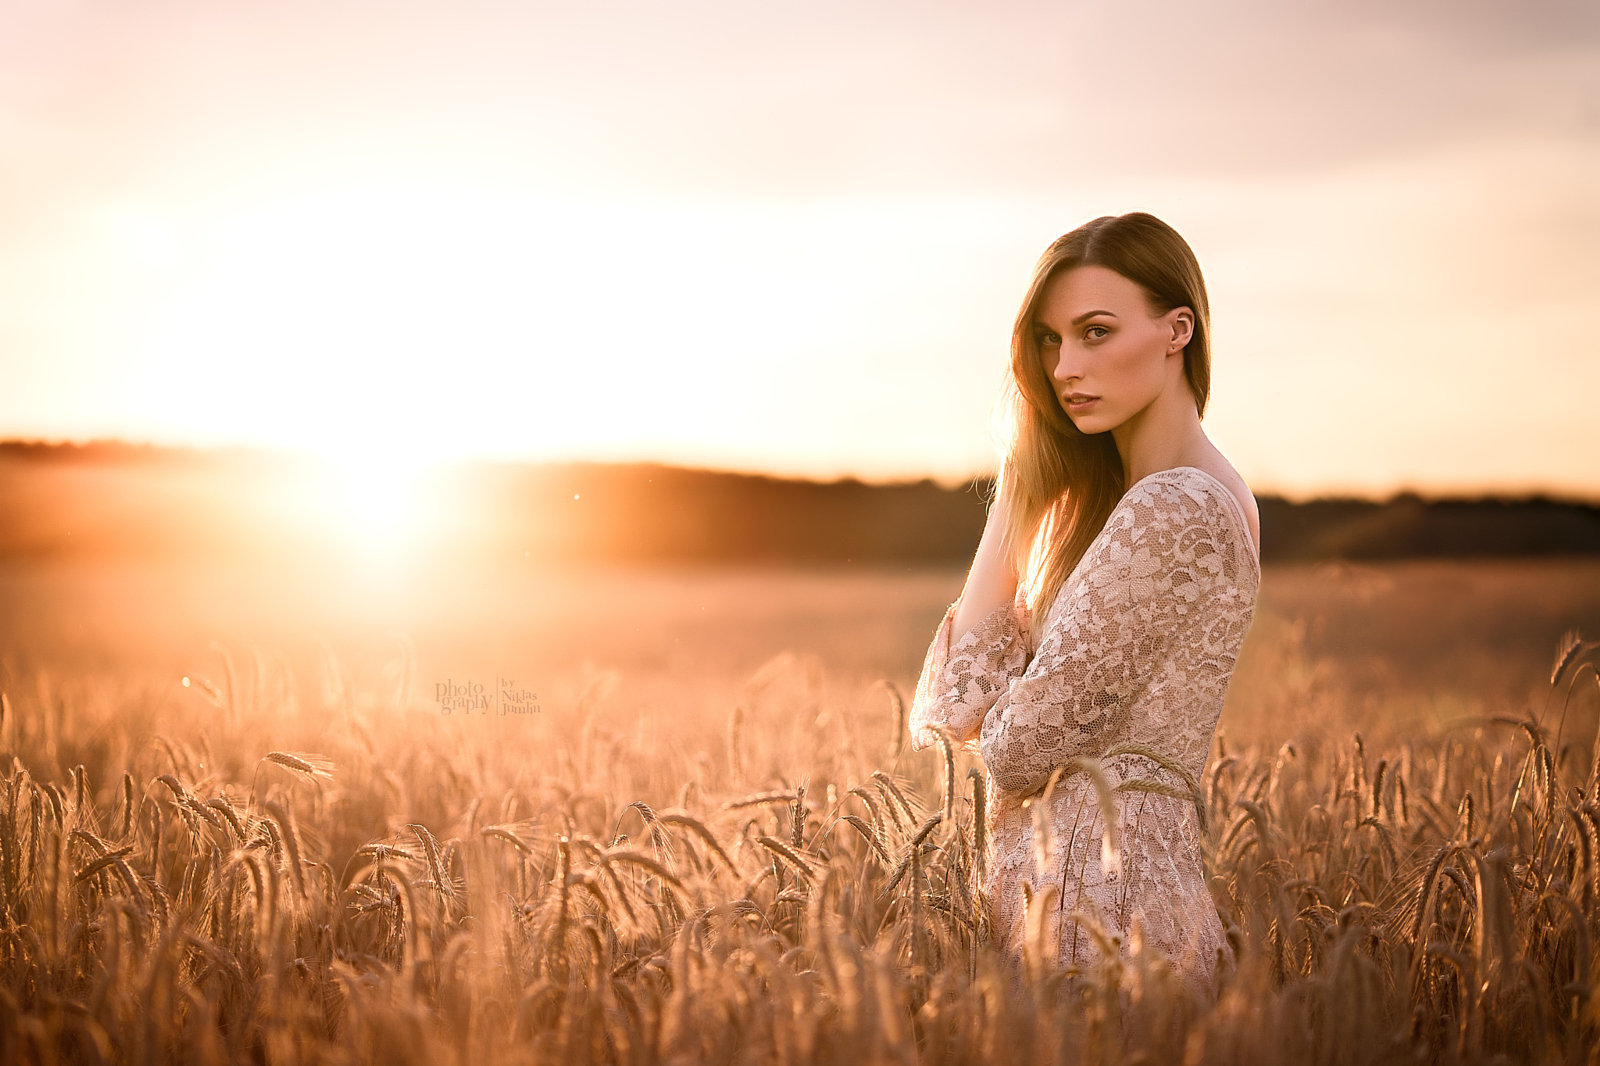 The Story Behind These Simple Stunning Natural Light Portraits